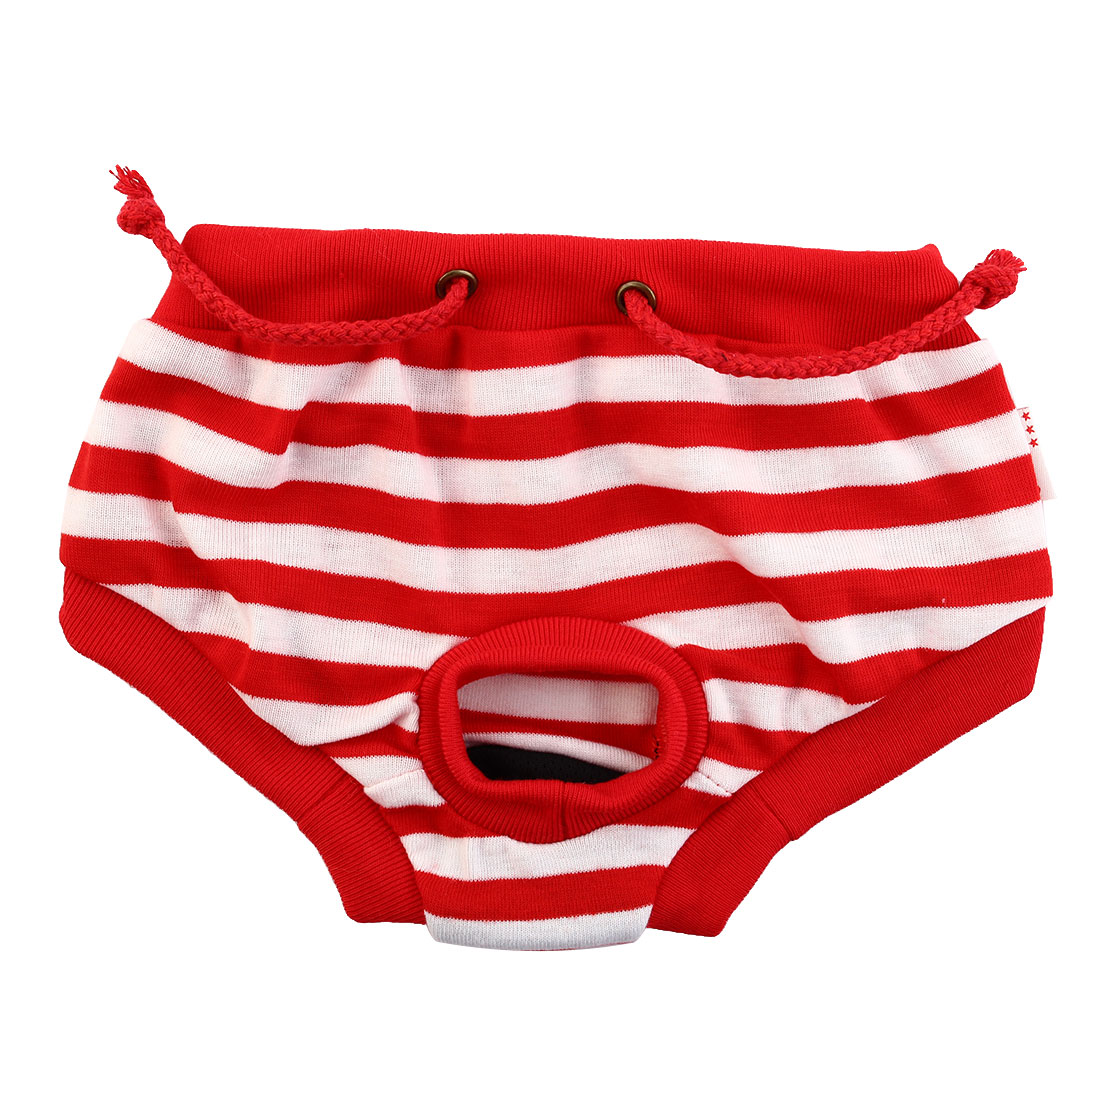 Red White Stripped Dog Clothes Apparel Sanitary Diaper Pants Underwear Size L